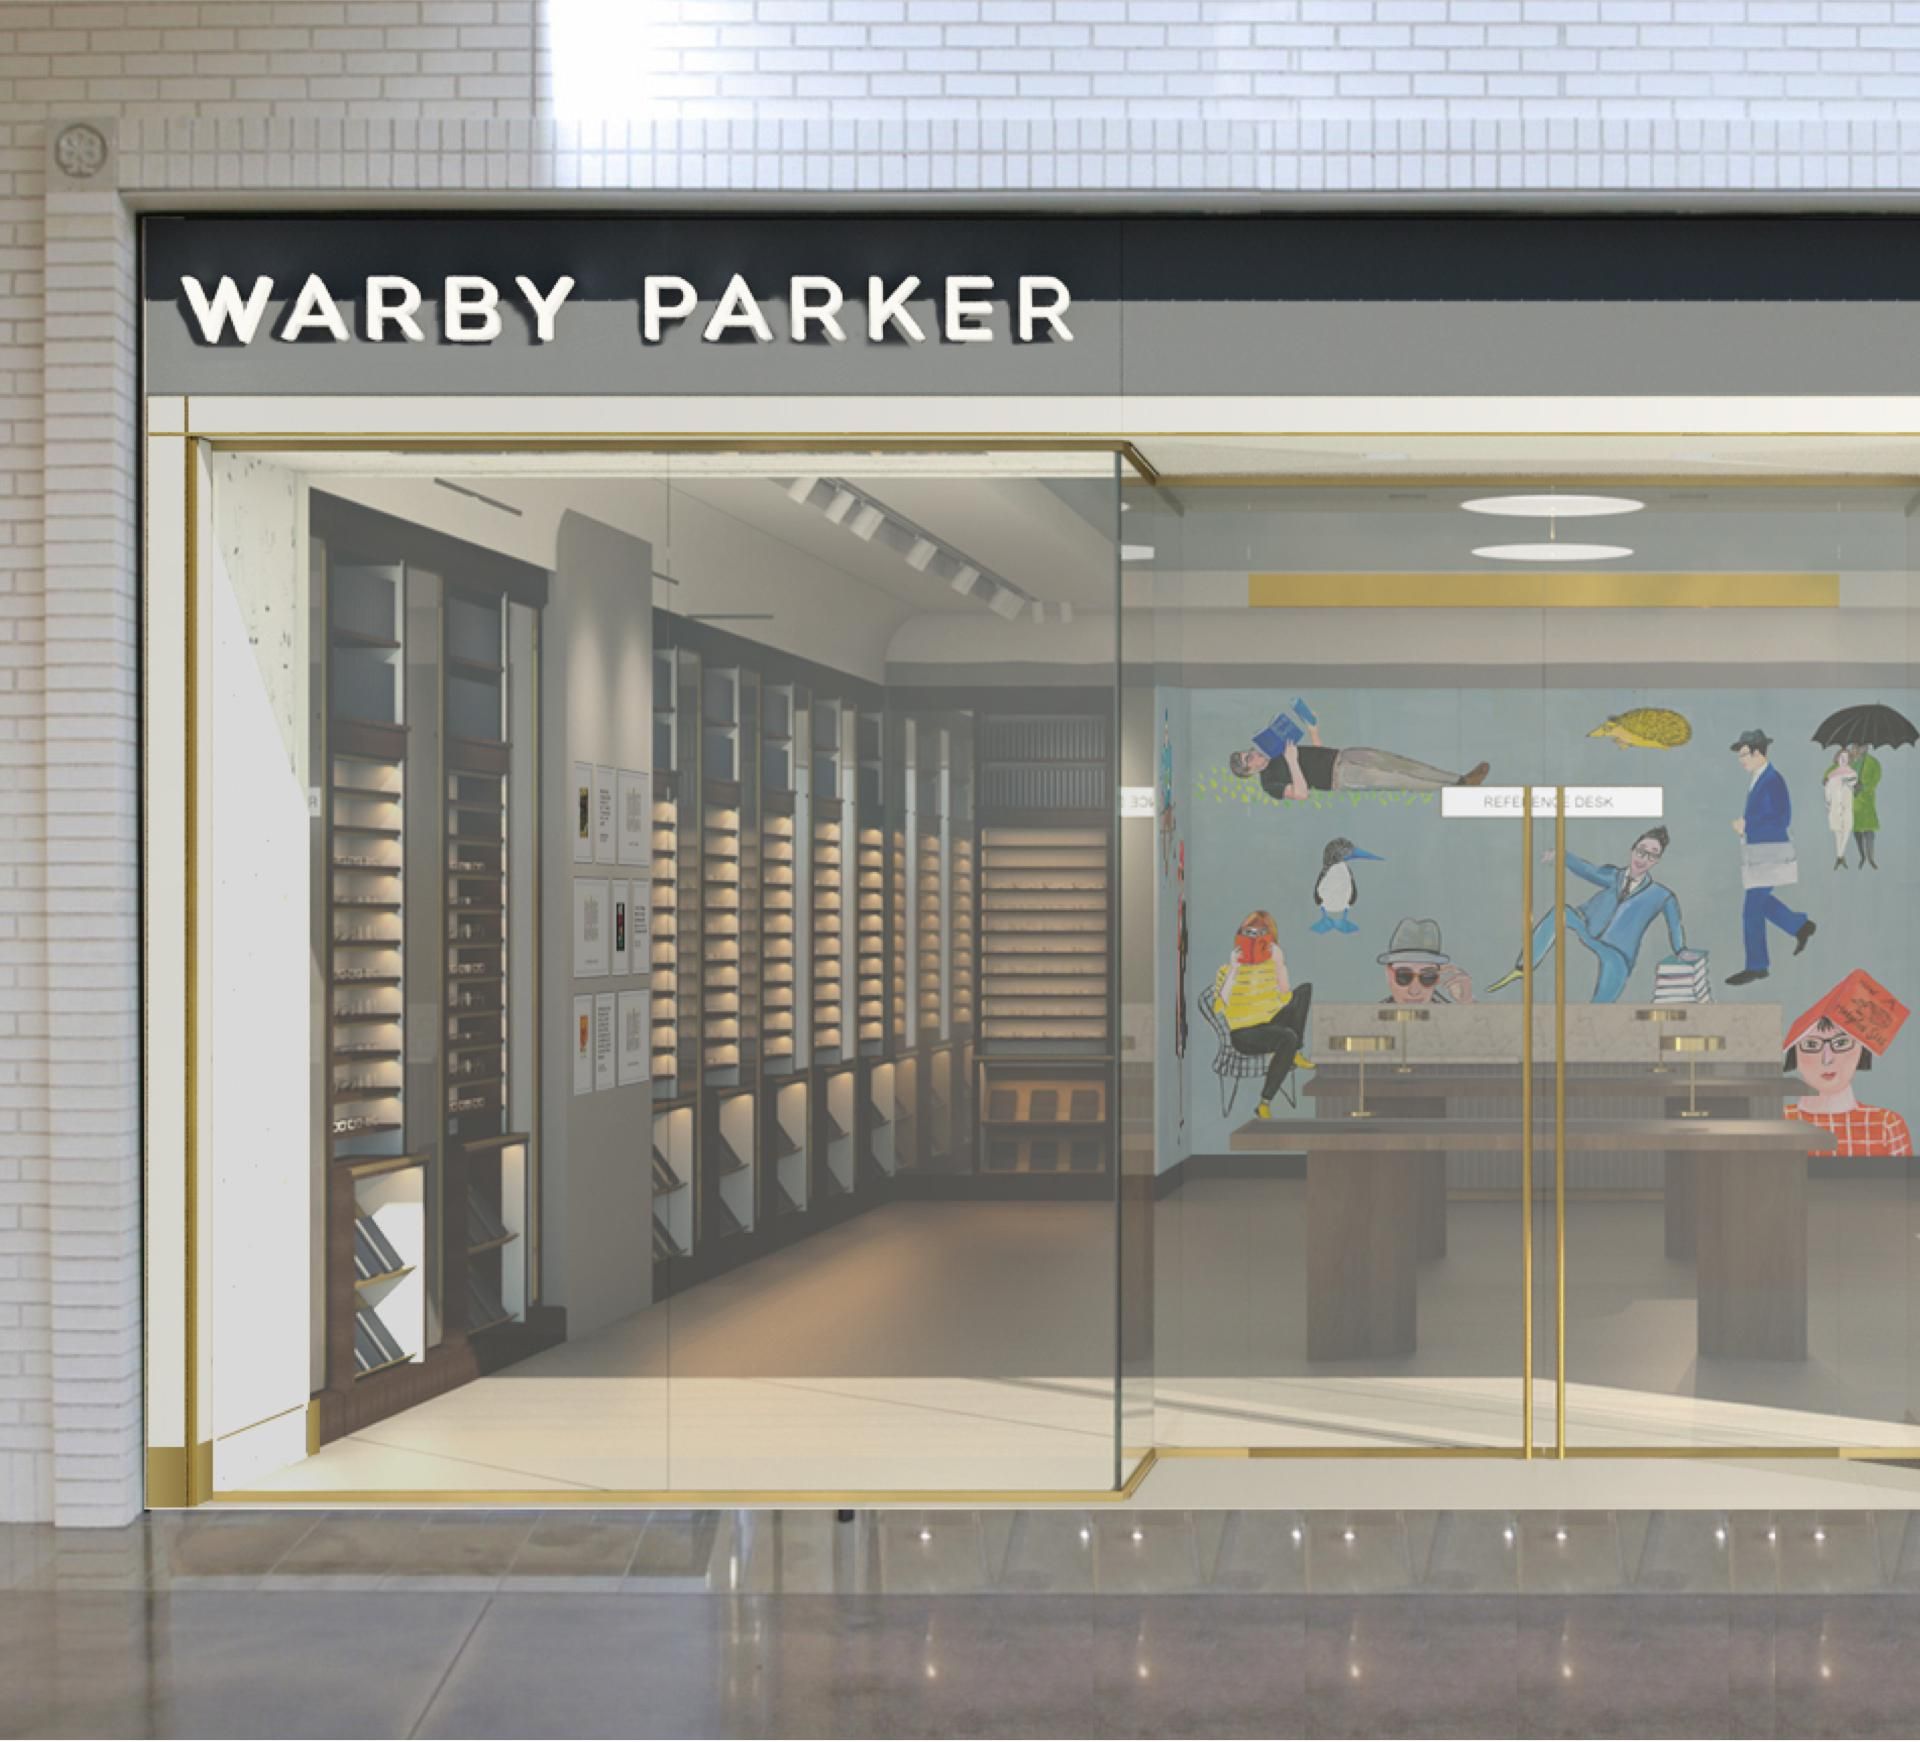 Warby Parker Classroom Warby Parker